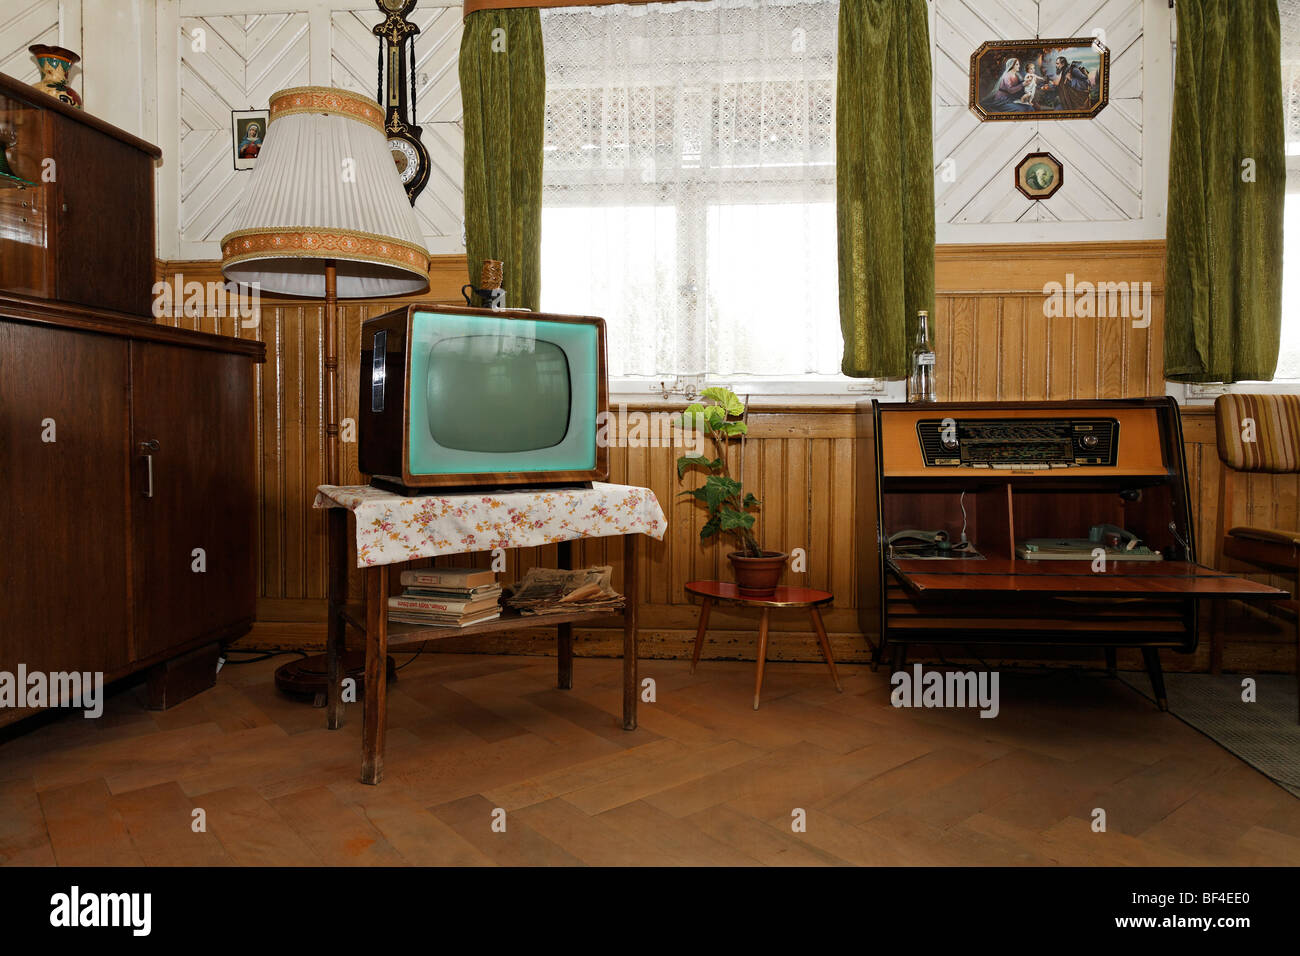 Living Room With Original Furniture From The 50s Old Black And White Tv Music Cabinet Haus